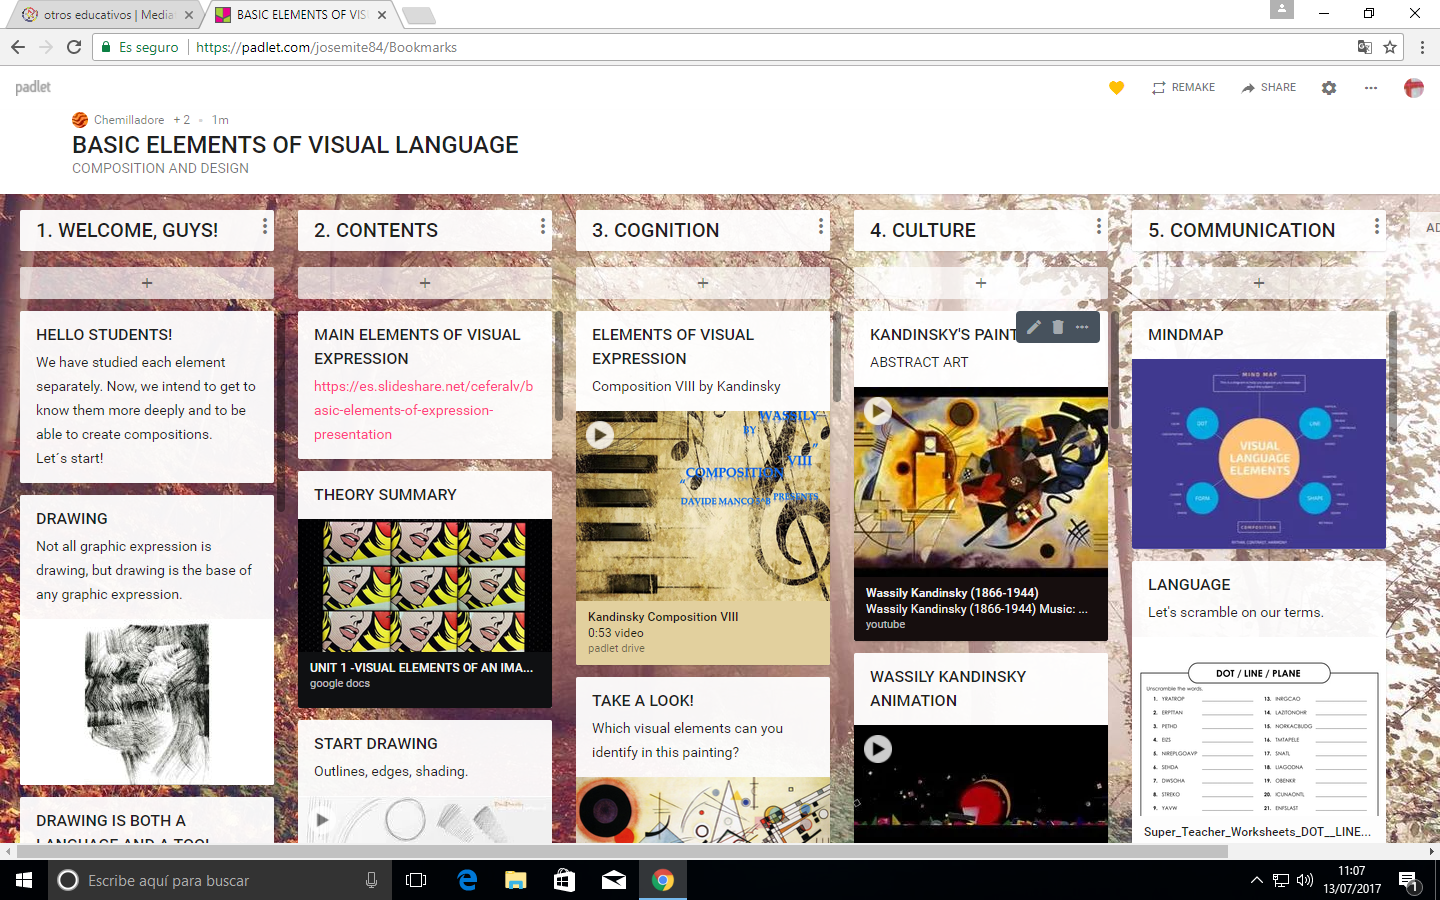 IMAGE OF PADLET IN-60 2017- BASIC ELEMENTS OF VISUAL LANGUAGE